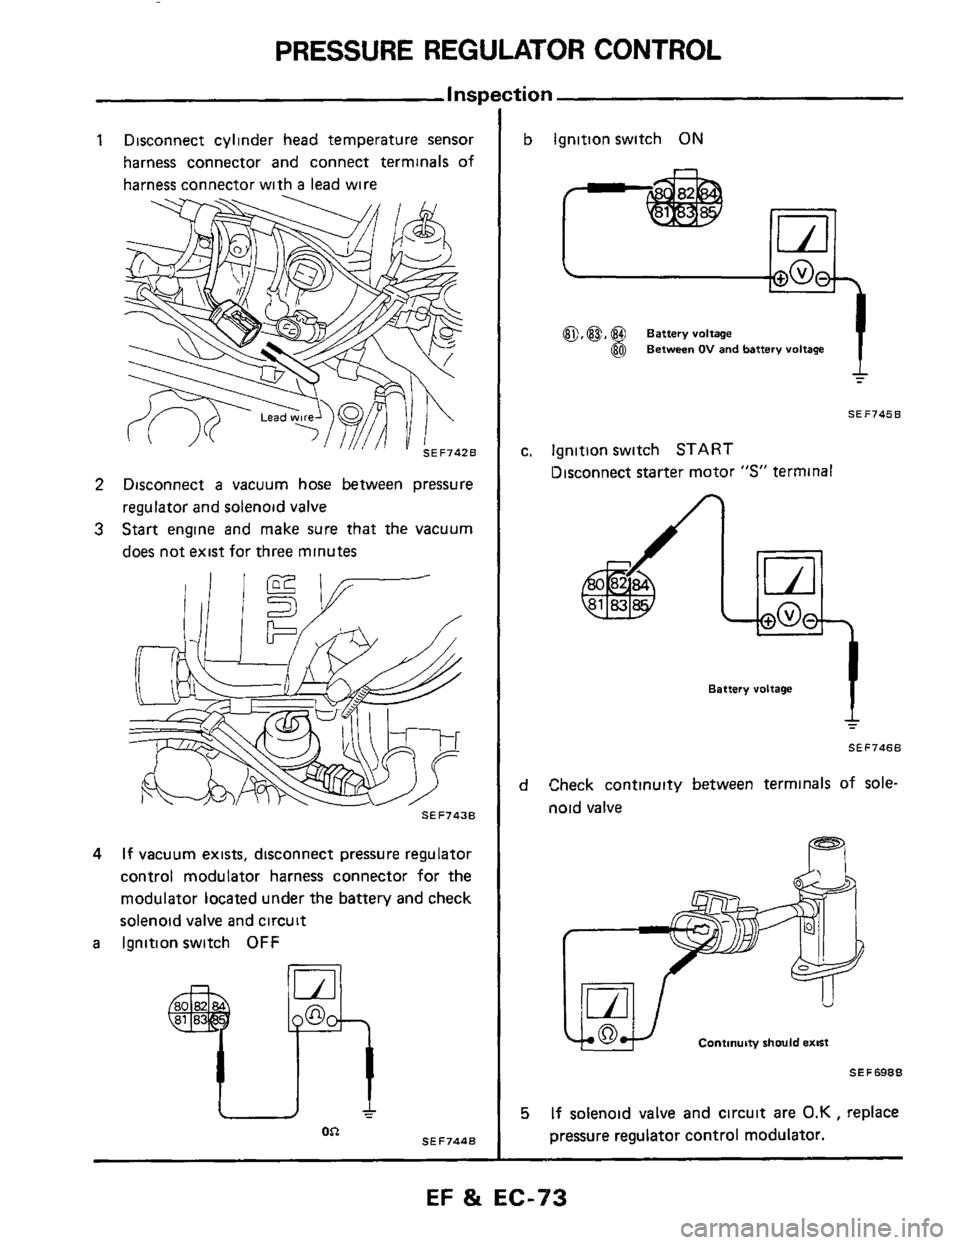 Engine Nissan 300zx 1984 Z31 Fuel And Emission Control System Filter Location Workshop Manual Page 73